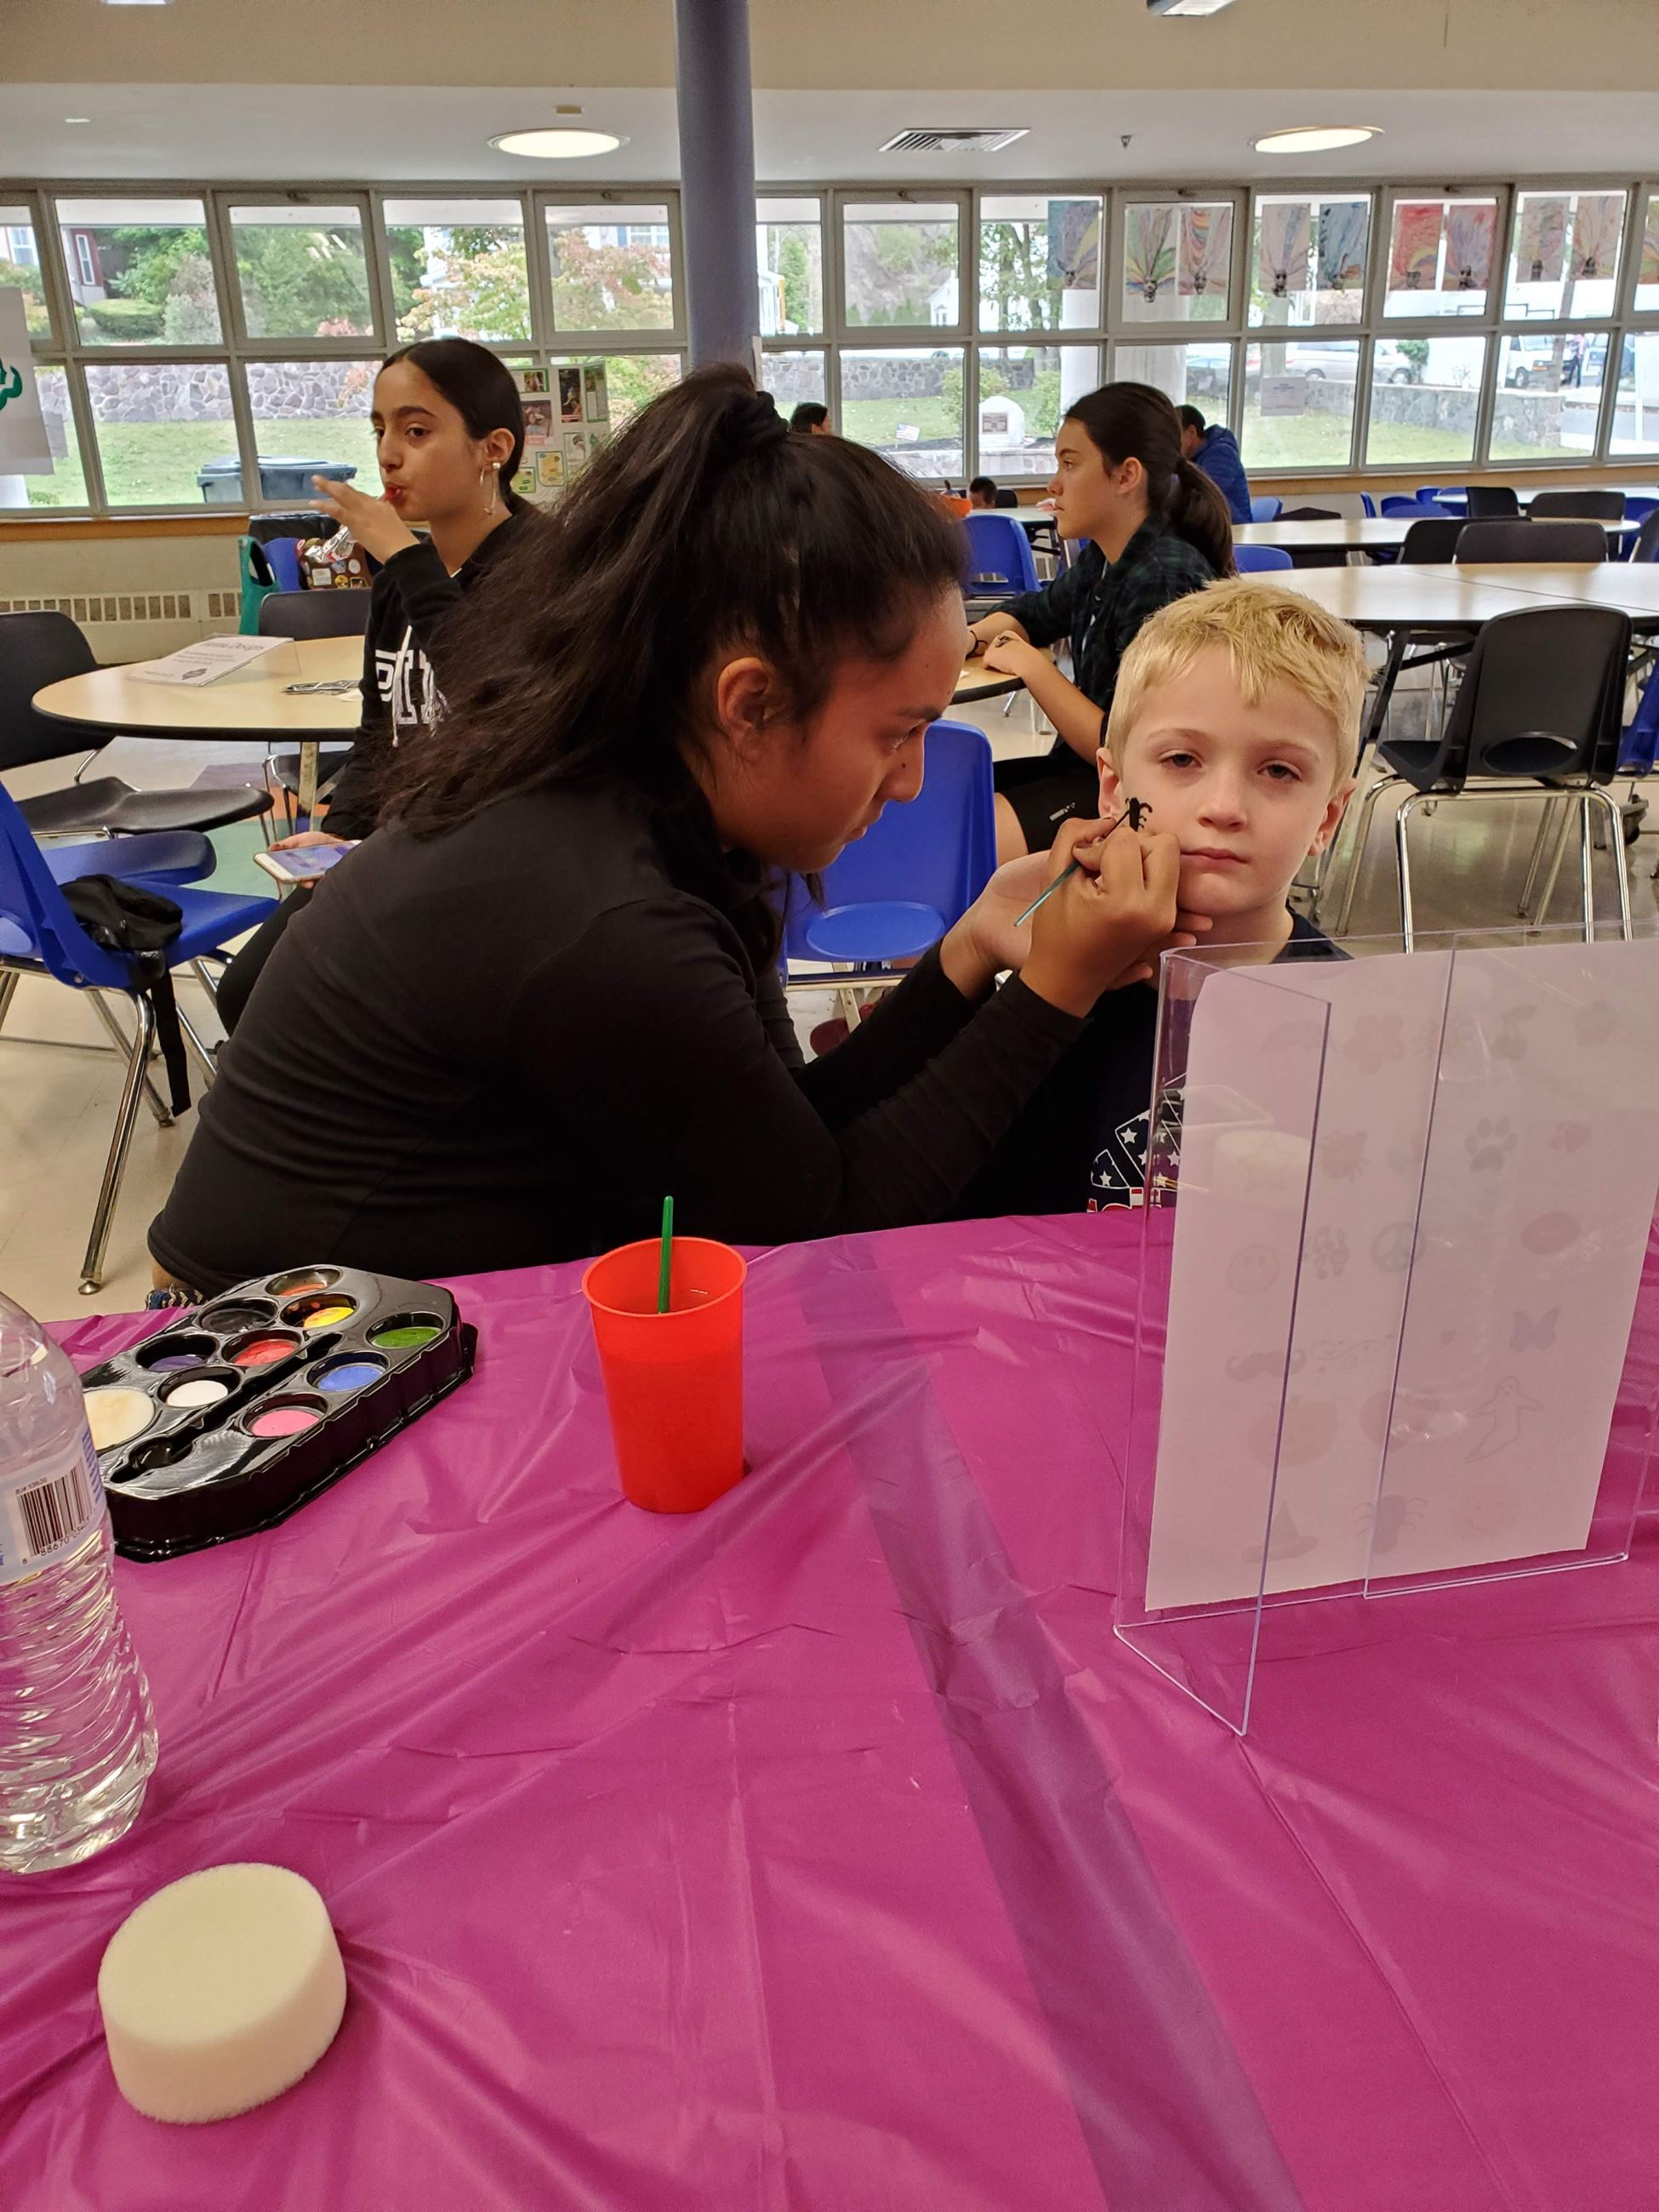 Teen Doing Face Paint for Kids at Public Safety Day Event